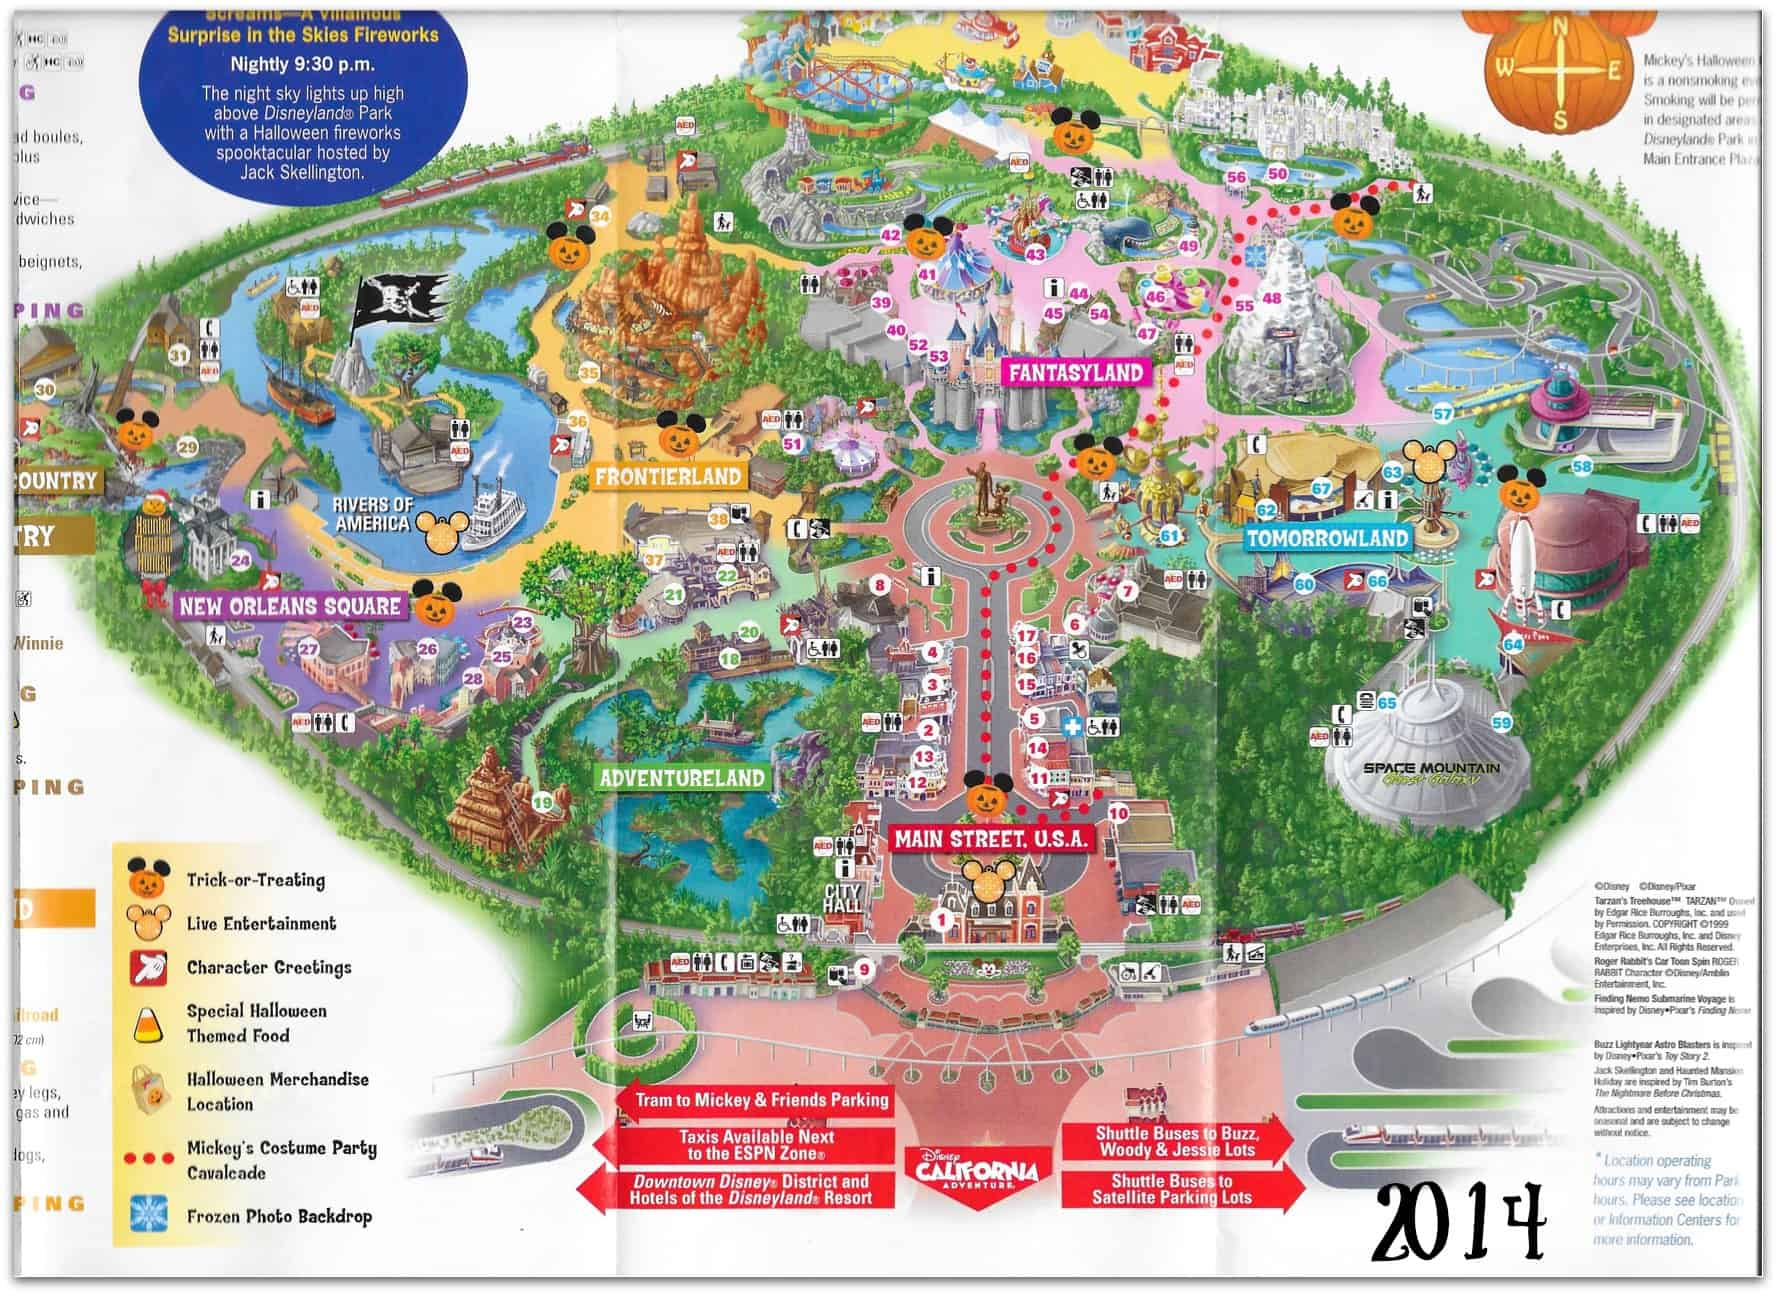 Mickey's Halloween Party Map